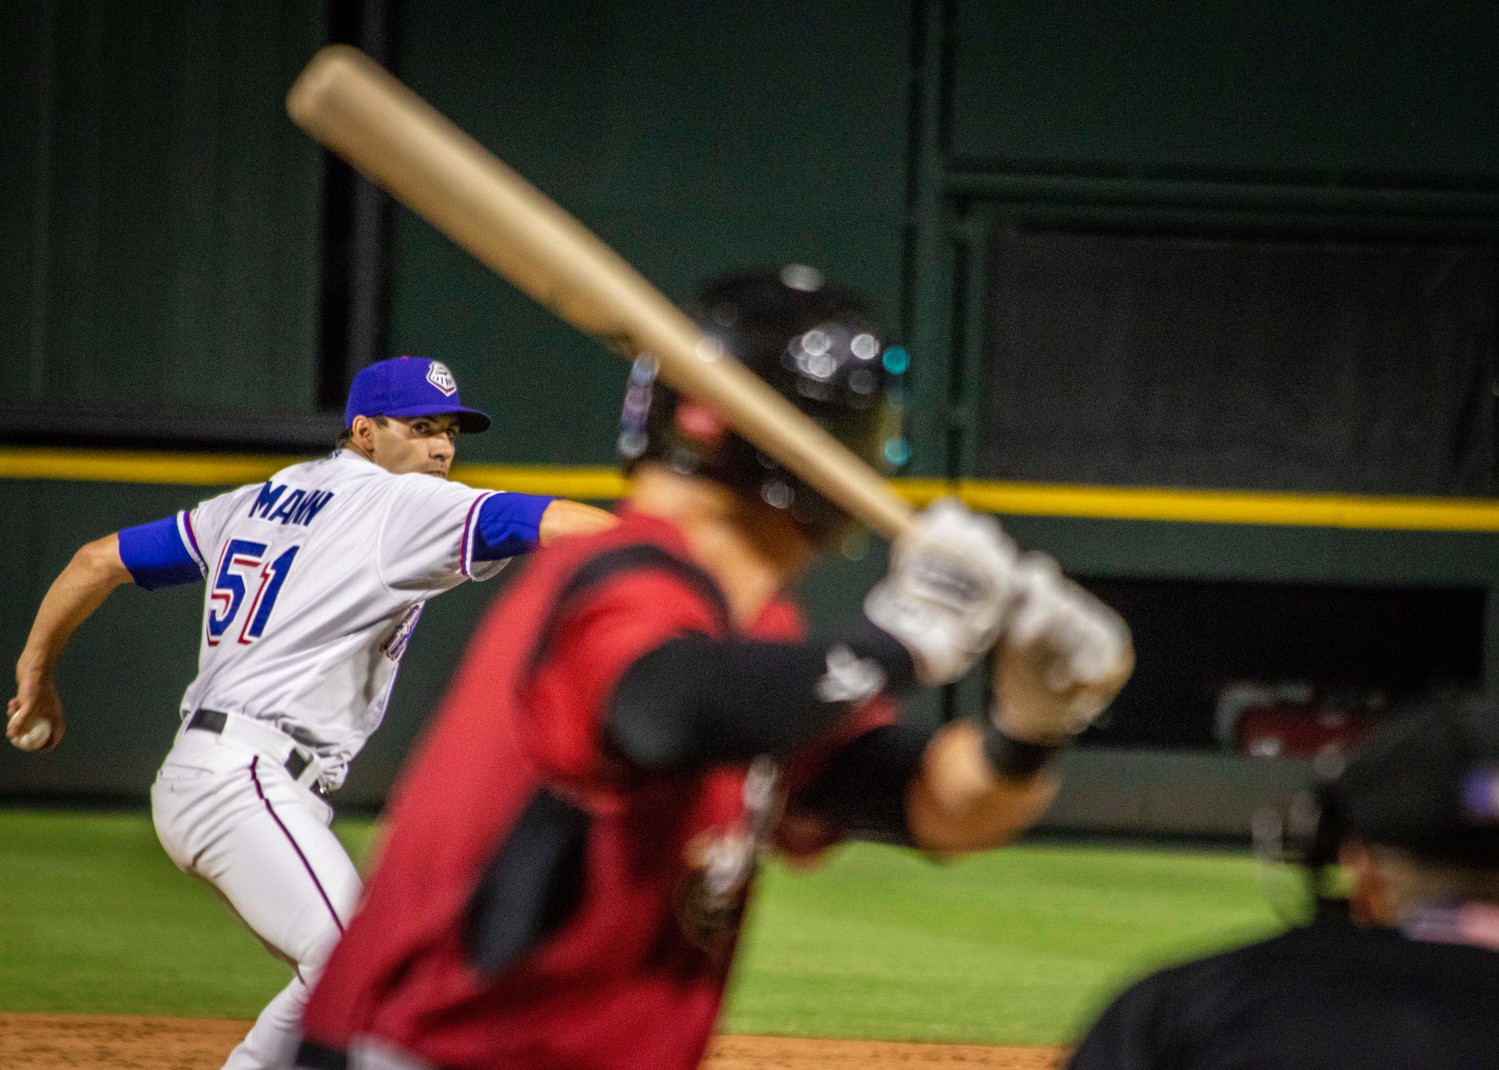 Brandon Mann joined the Rangers organization and was sent to Round Rock after spending time in four different MLB farm systems since he was drafted in 2002.